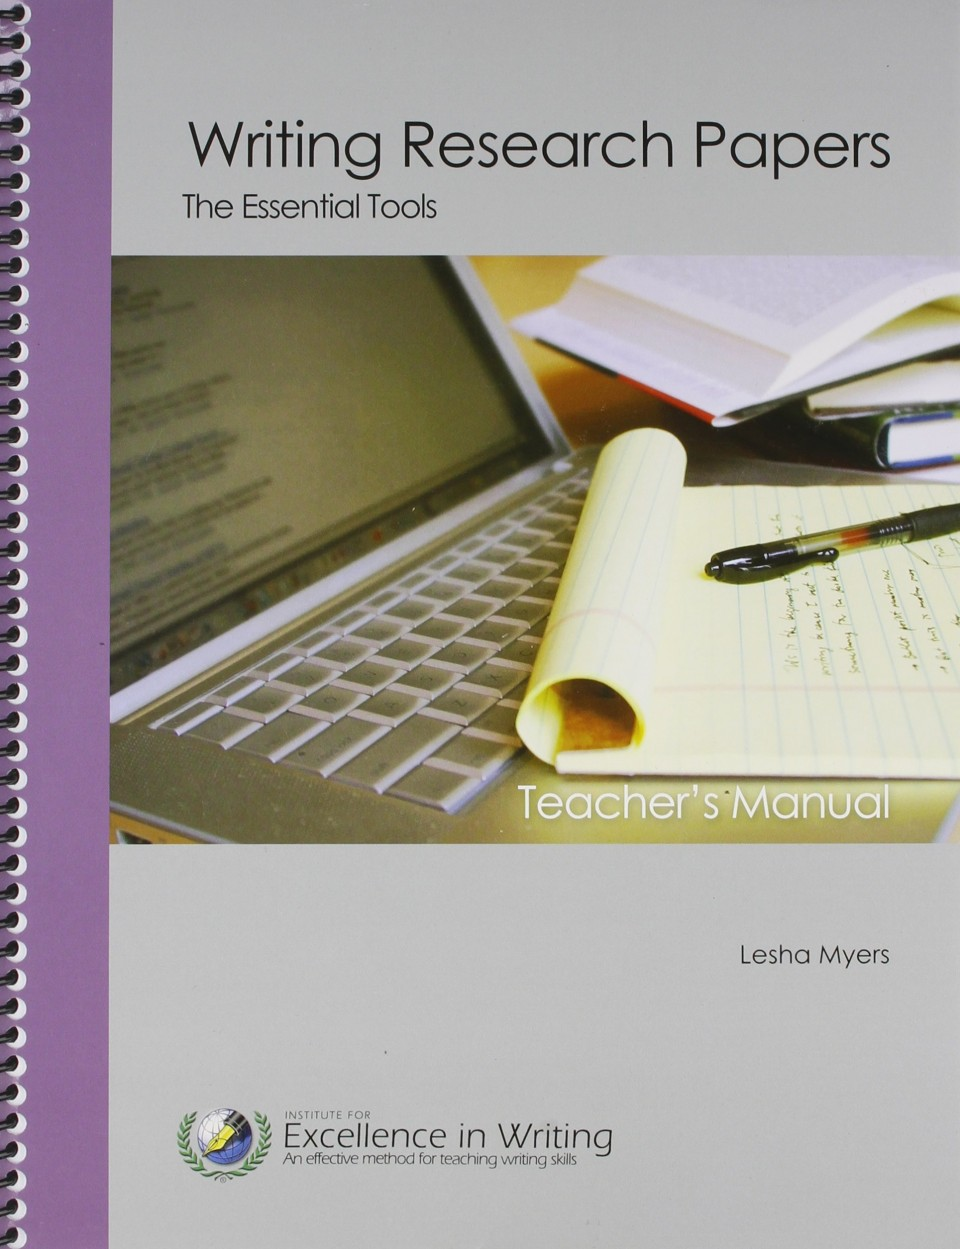 021 91ax63bn6xl Writing Research Striking Paper Papers A Complete Guide 16th Edition Pdf James D Lester Outline 960